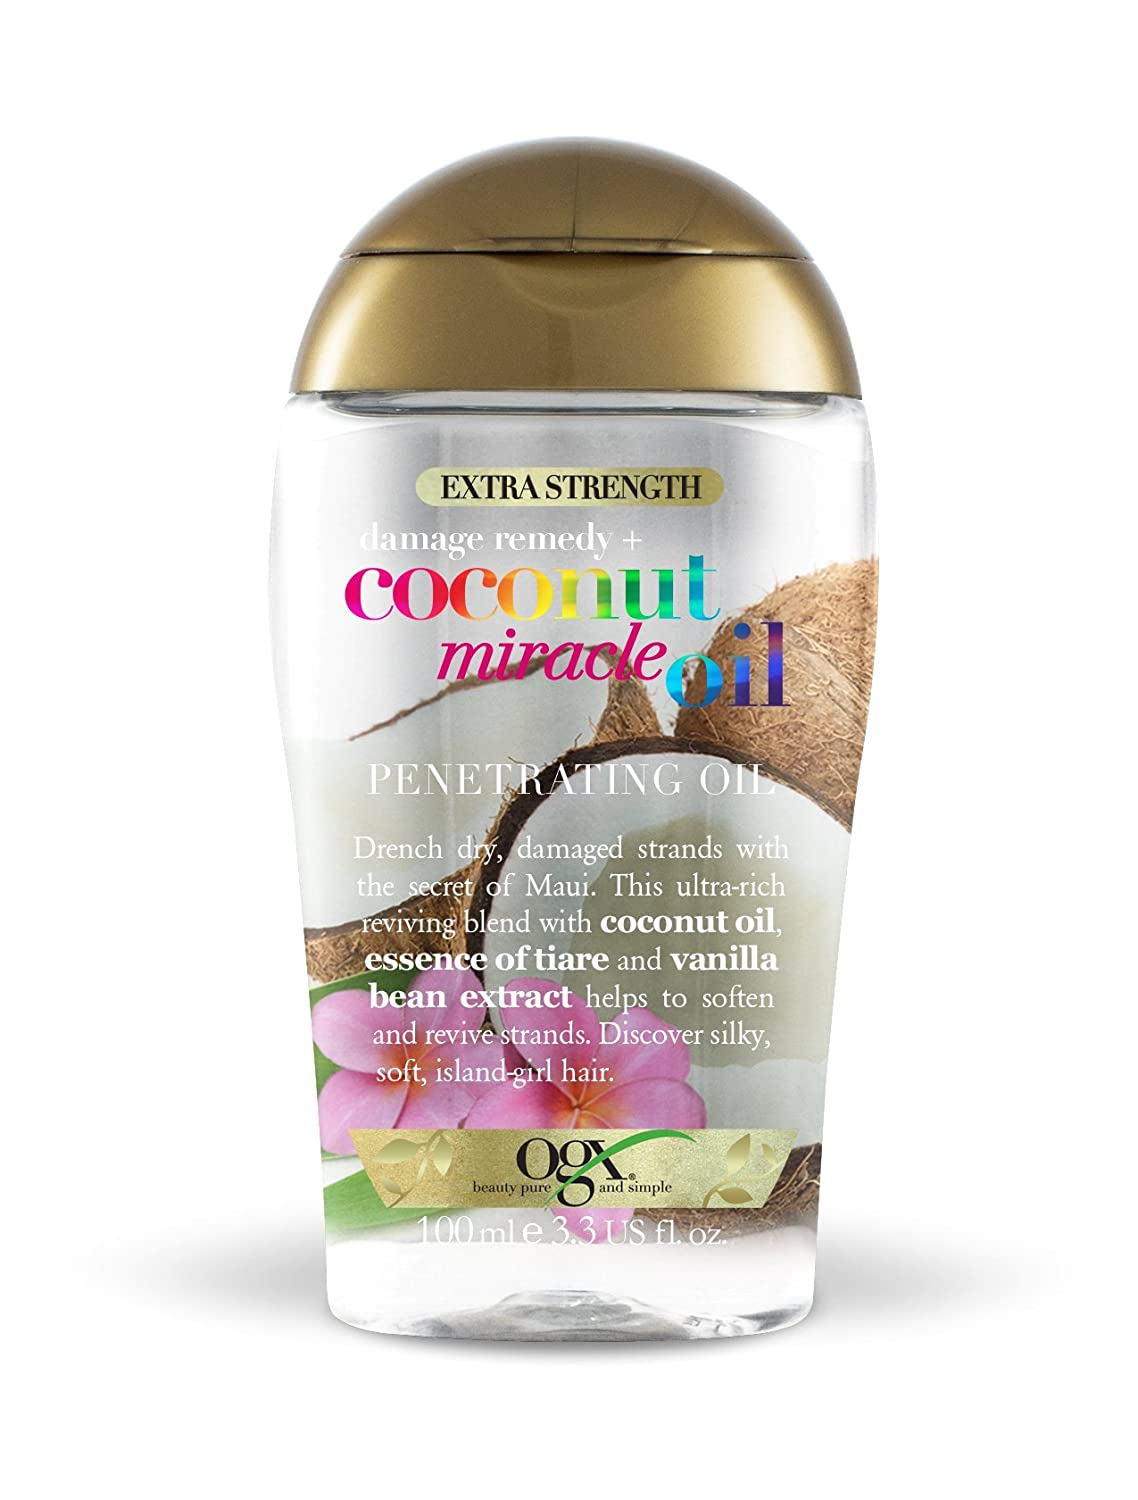 Ogx extra Strength danni rimedio Plus Coconut Miracle oil Penetrating oil, 100ml OGX BEAUTY 97222